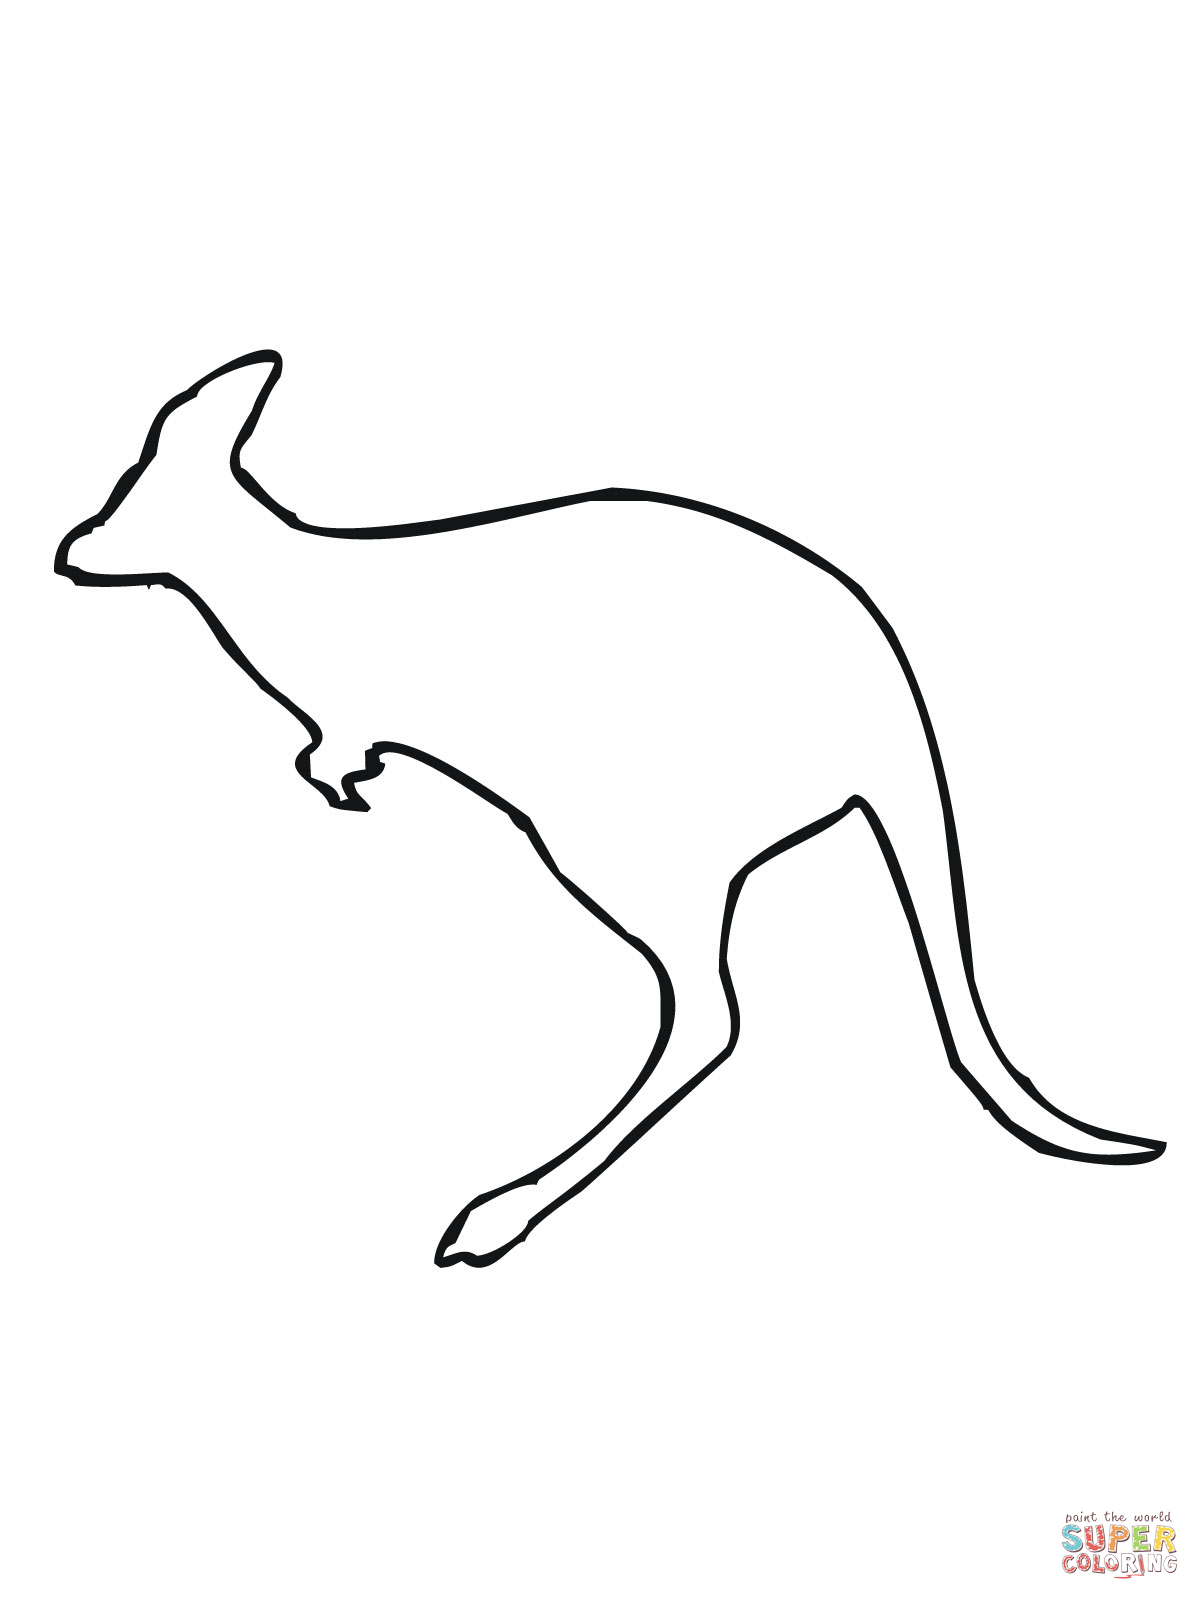 1200x1600 Leaping Kangaroo Outline Coloring Page Tats